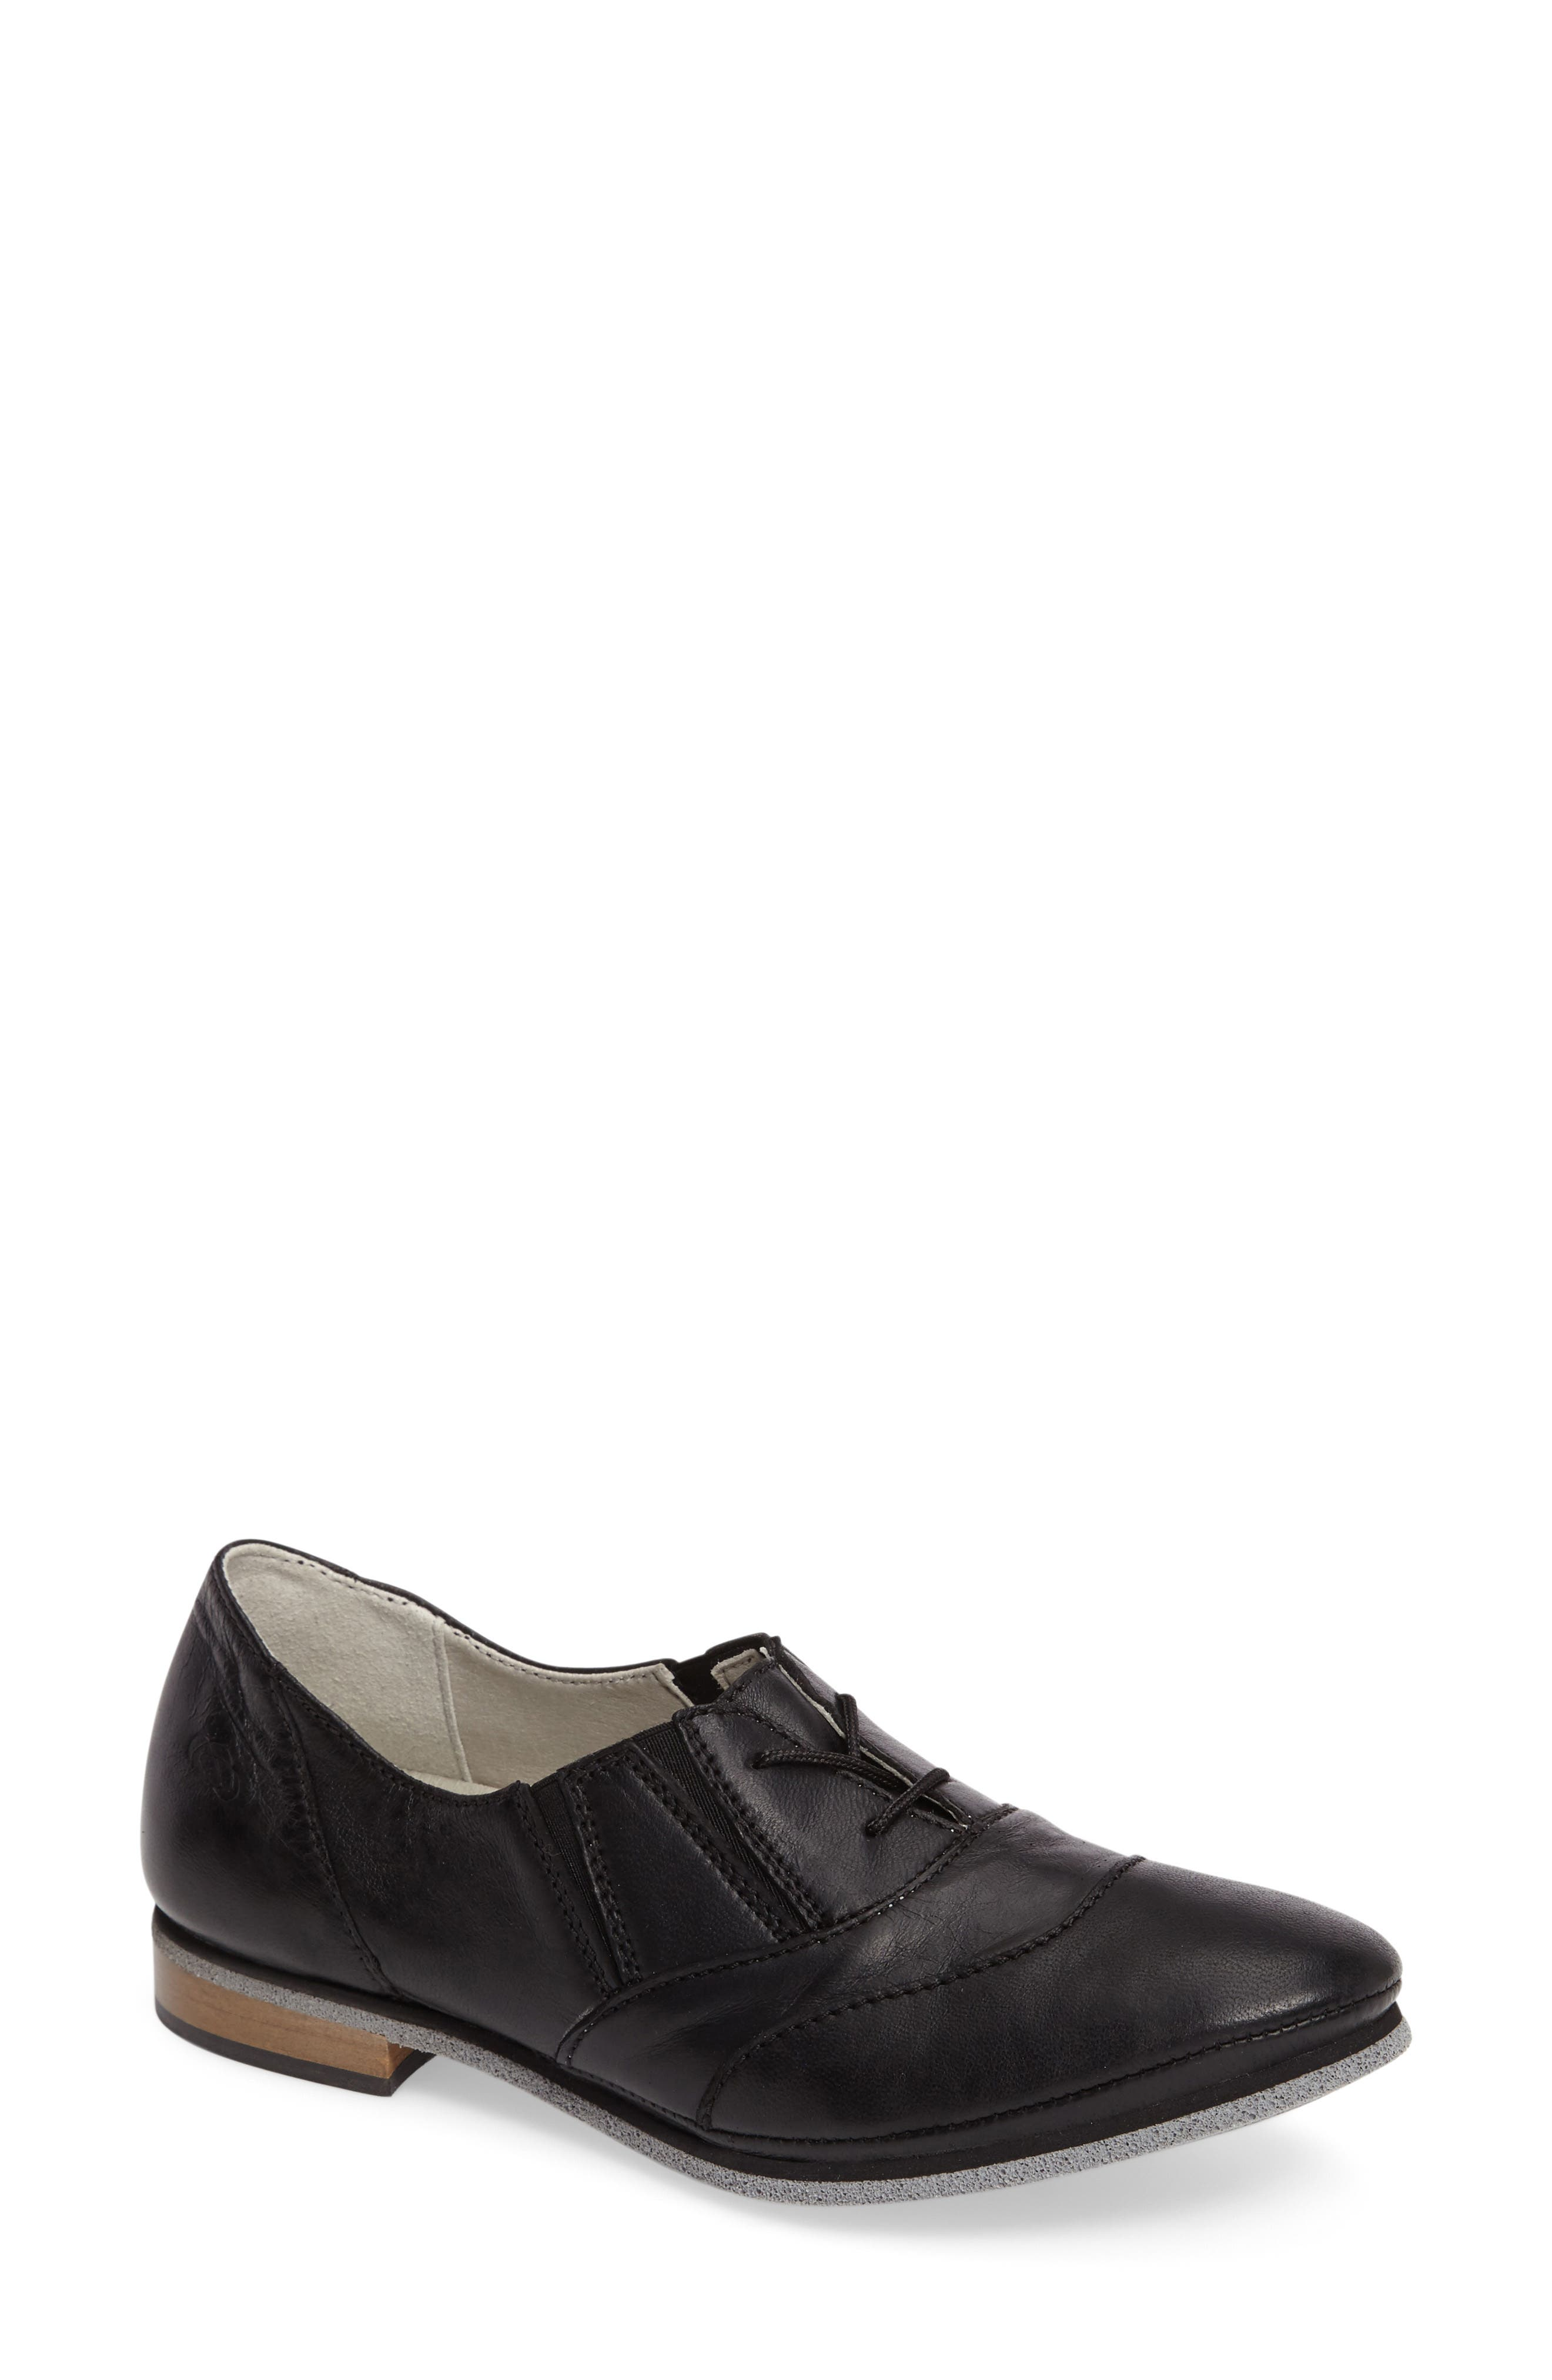 Bliss Lace-Up Oxford,                         Main,                         color, 001